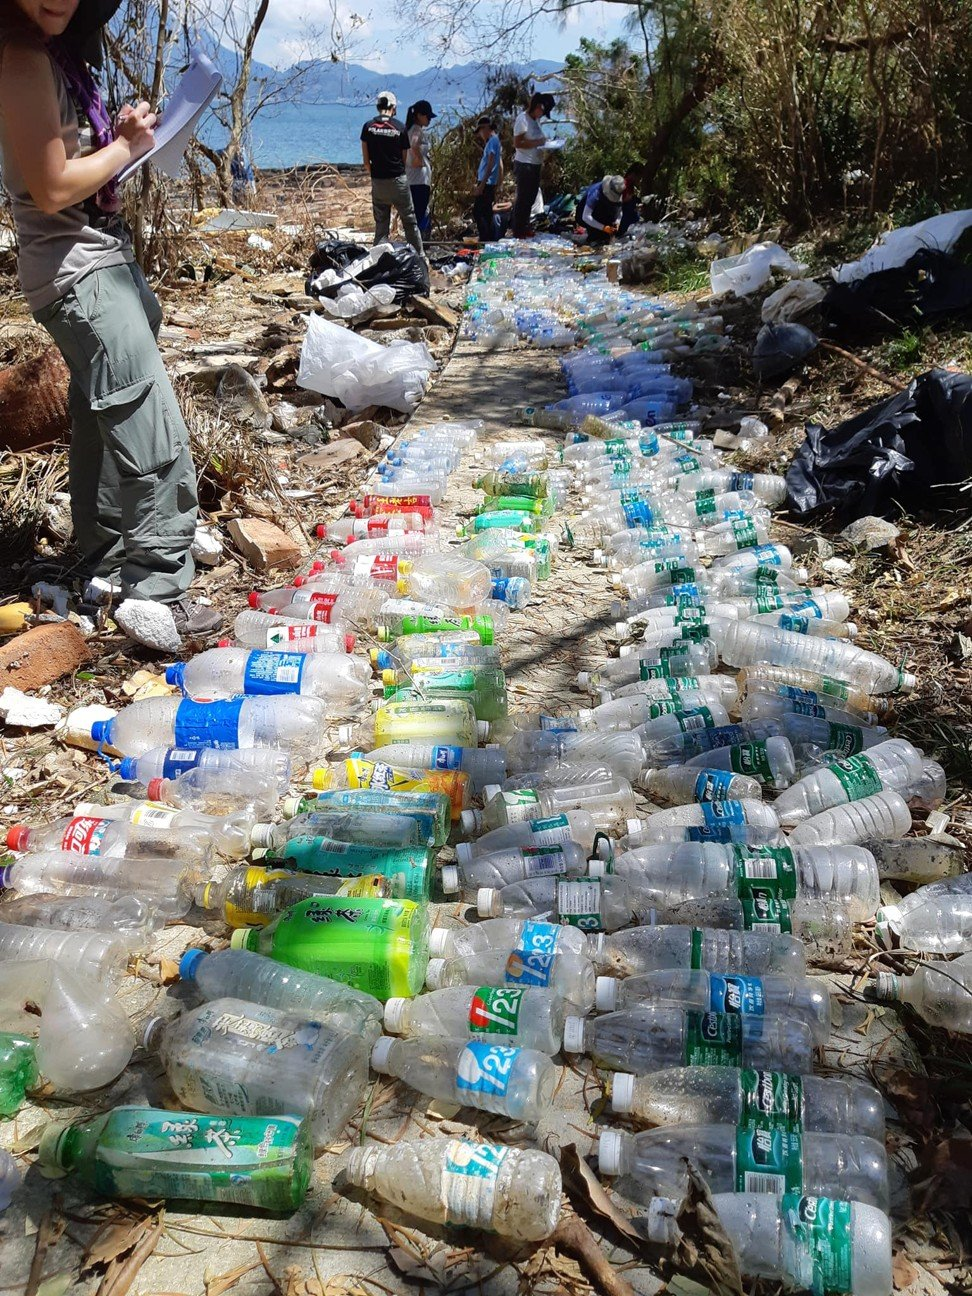 Volunteers collect plastic bottles that washed up on Tung Ping Chau, an uninhabited island in Hong Kong's northeastern waters. Photo: Facebook